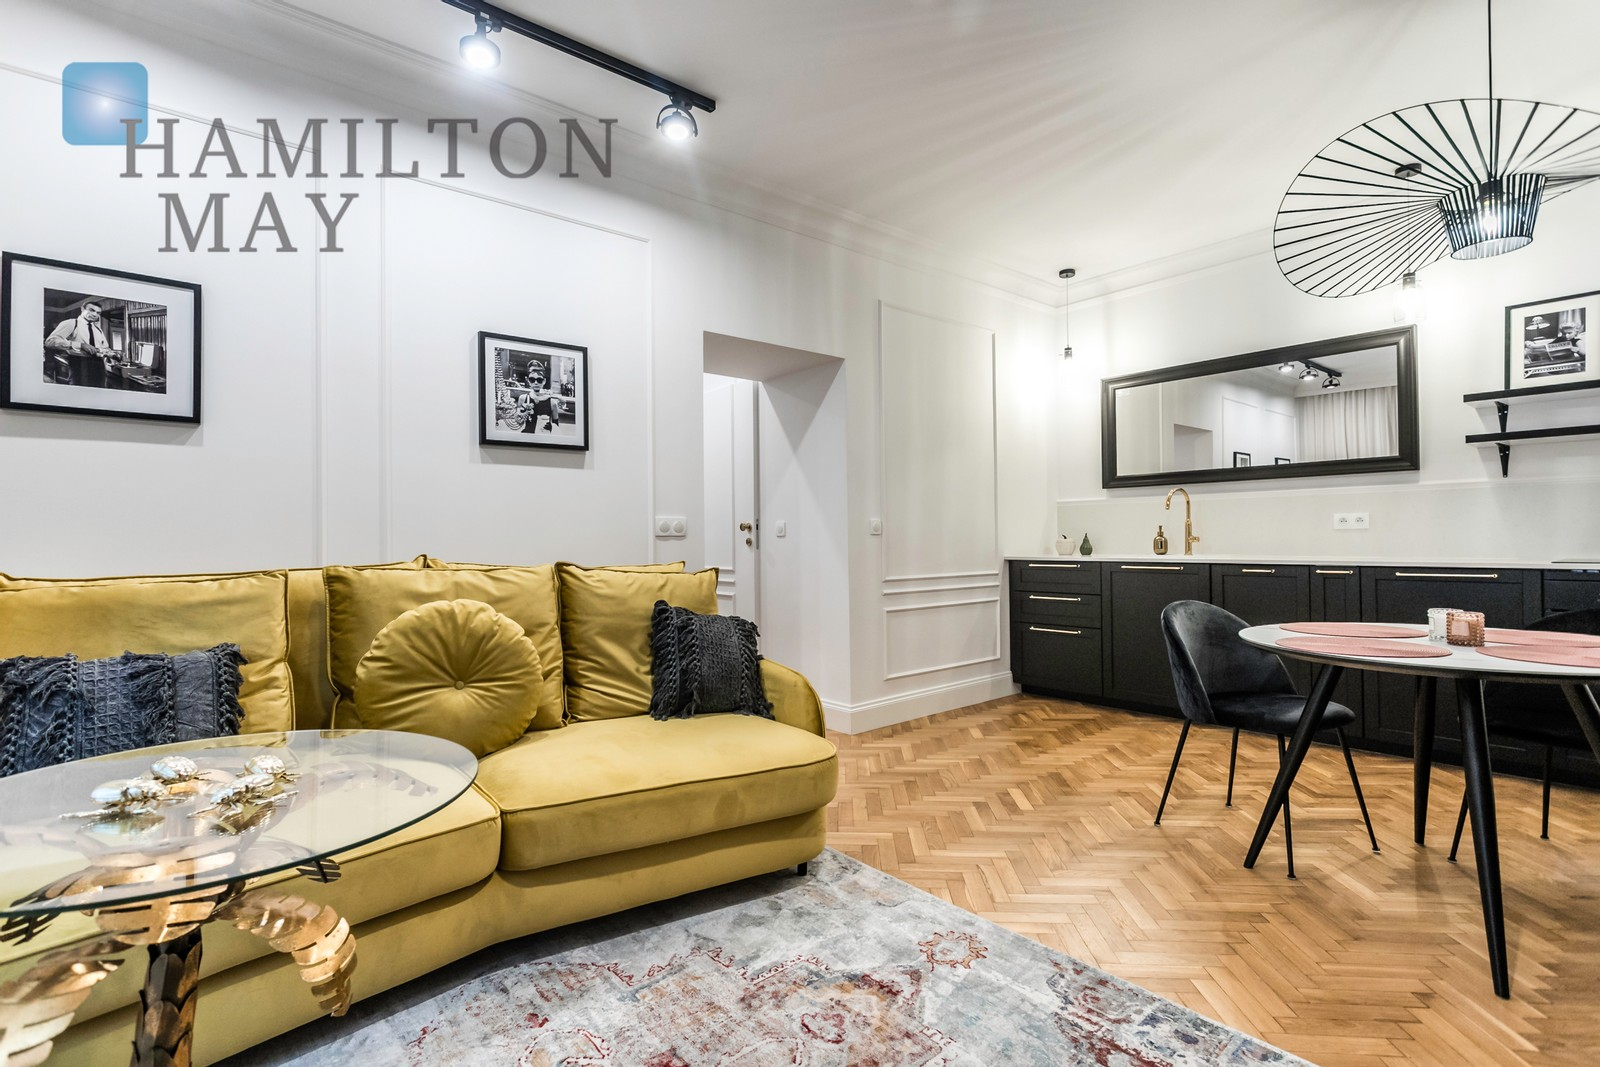 Hamilton May's hot sales offers - hand picked deals from our sales team photo